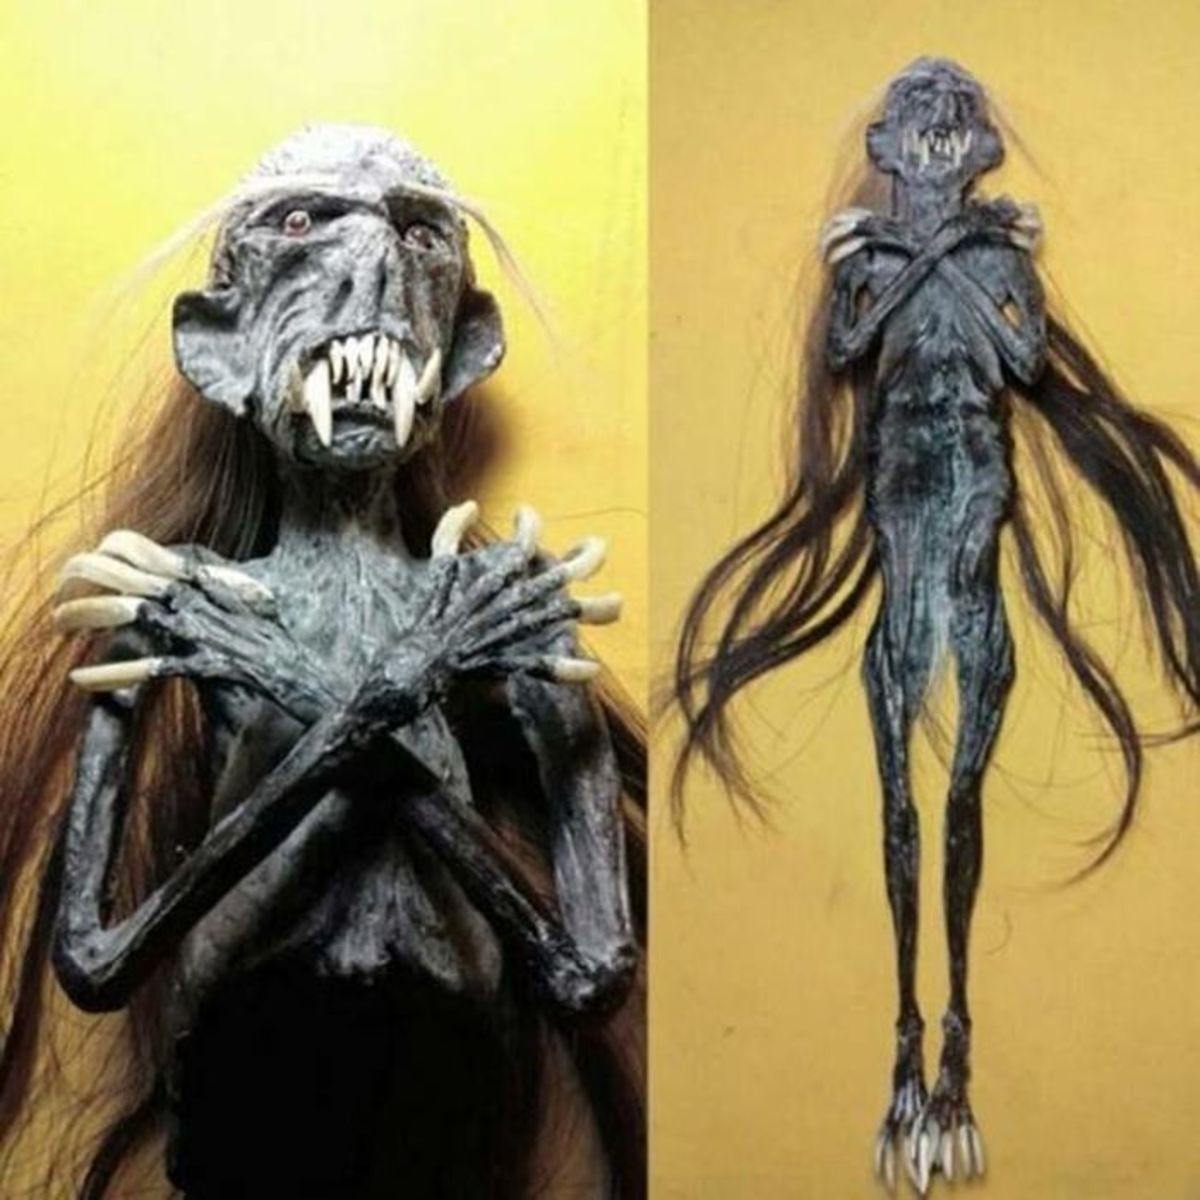 jenglot-the-terrifying-demon-from-indonesia